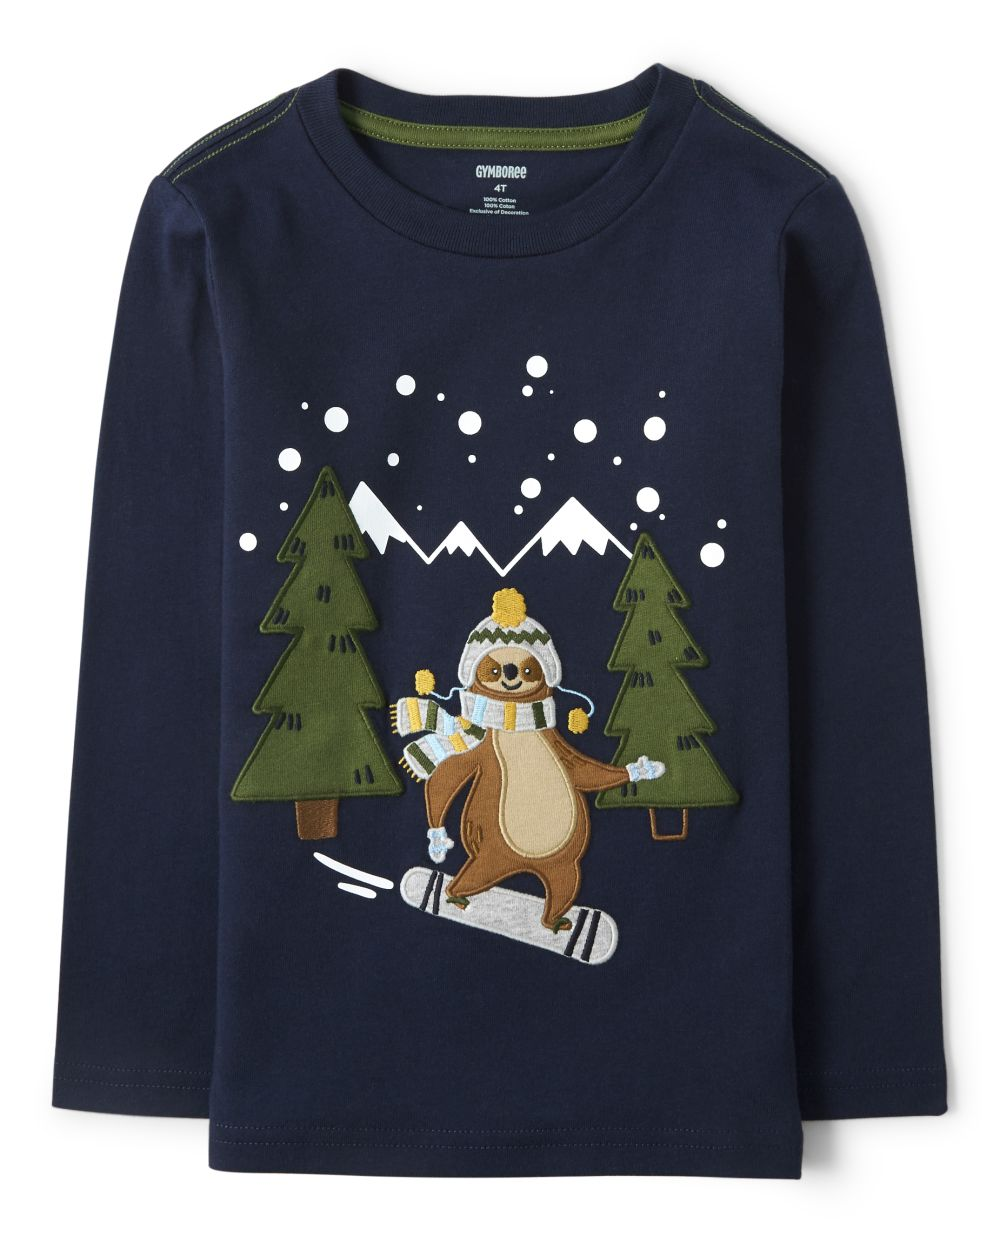 Boys Snowboarding Sloth Top - Aspen Lodge